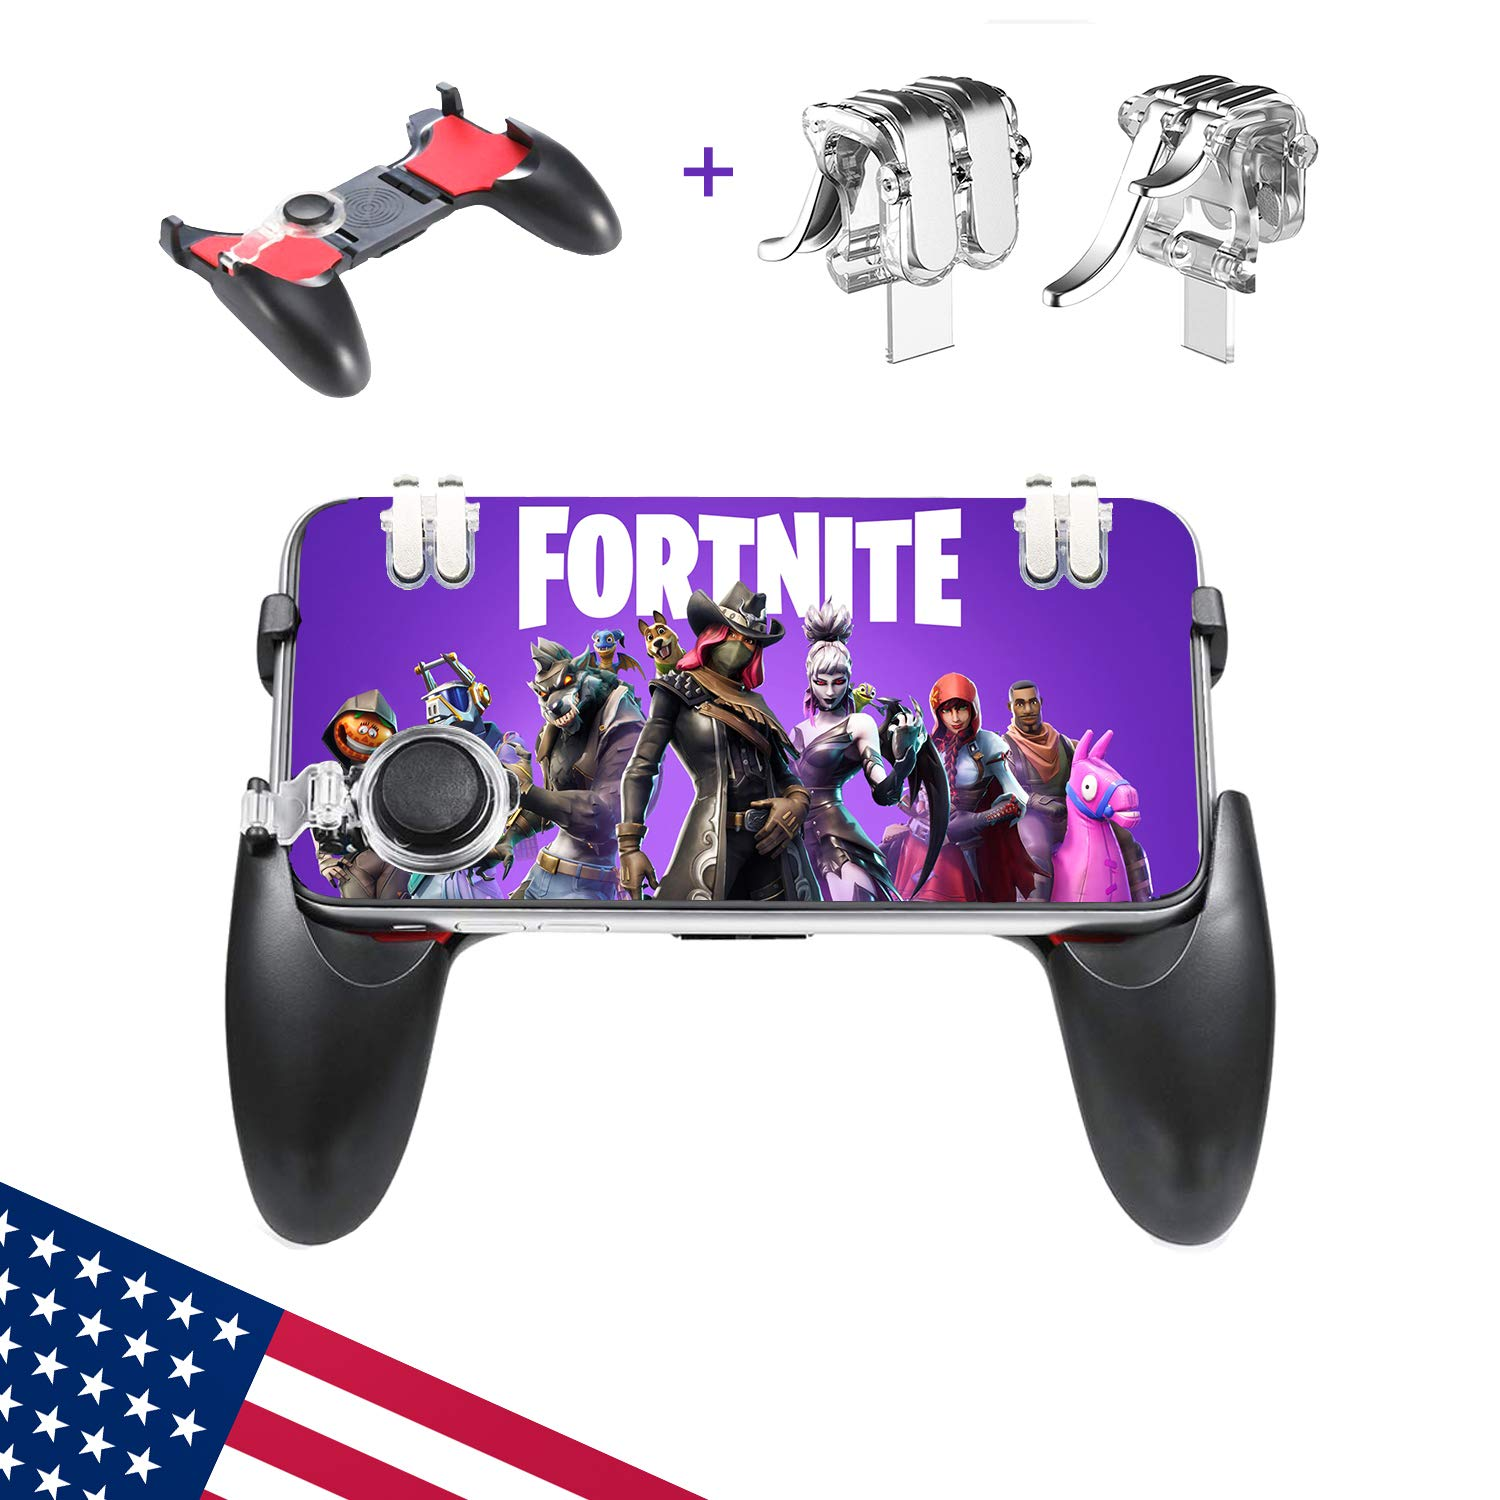 mobile controller mobile game controller compatible with fortnite iphone android mobile controller 3 in 1 compatible with fortnite pubg mobile - compatible fortnite mobile